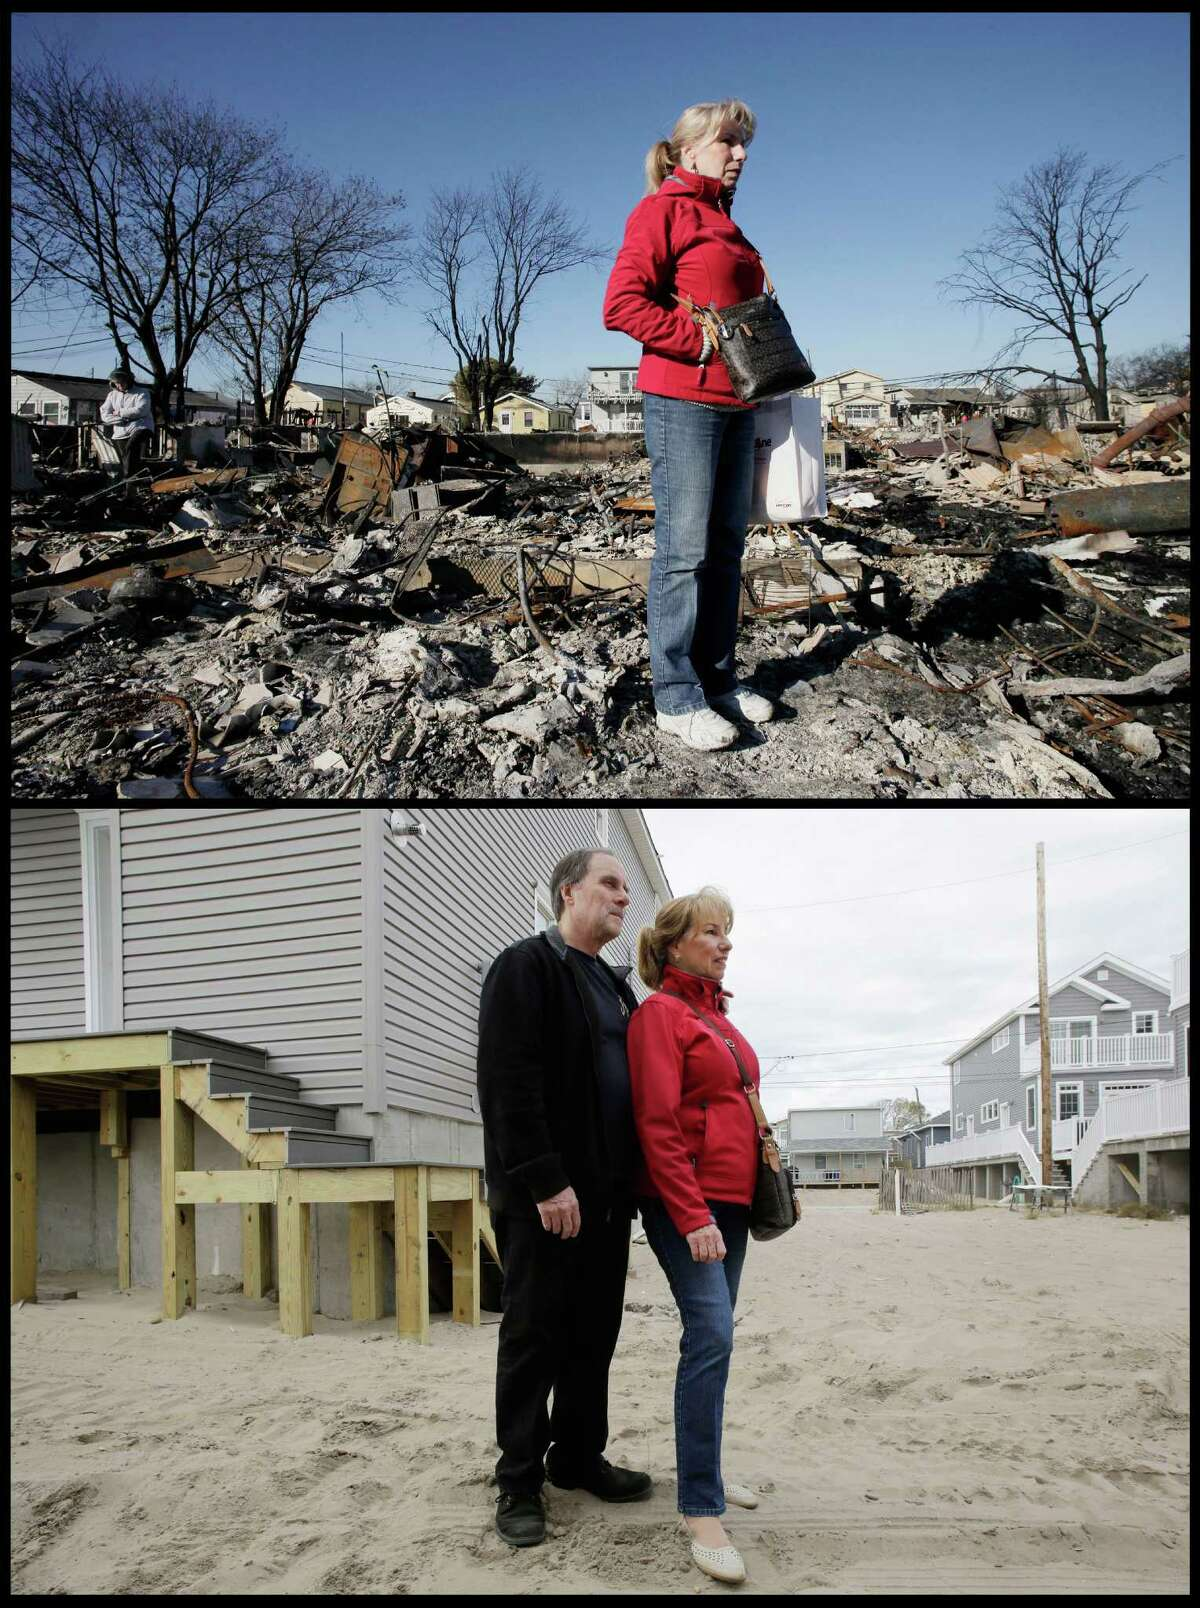 In this combination of photos from Nov. 14 2012, and Oct. 21, 2014, Cathy O'Hanlon poses for a photo in front of the charred remains of her home in the Breezy Point section of the Queens borough of New York. and new construction to replace them and , Michael and Cathy O'Hanlon pose for a photo in front of their newly-built home, left, nearly two years later. (AP Photo/Mark Lennihan) ORG XMIT: NY543